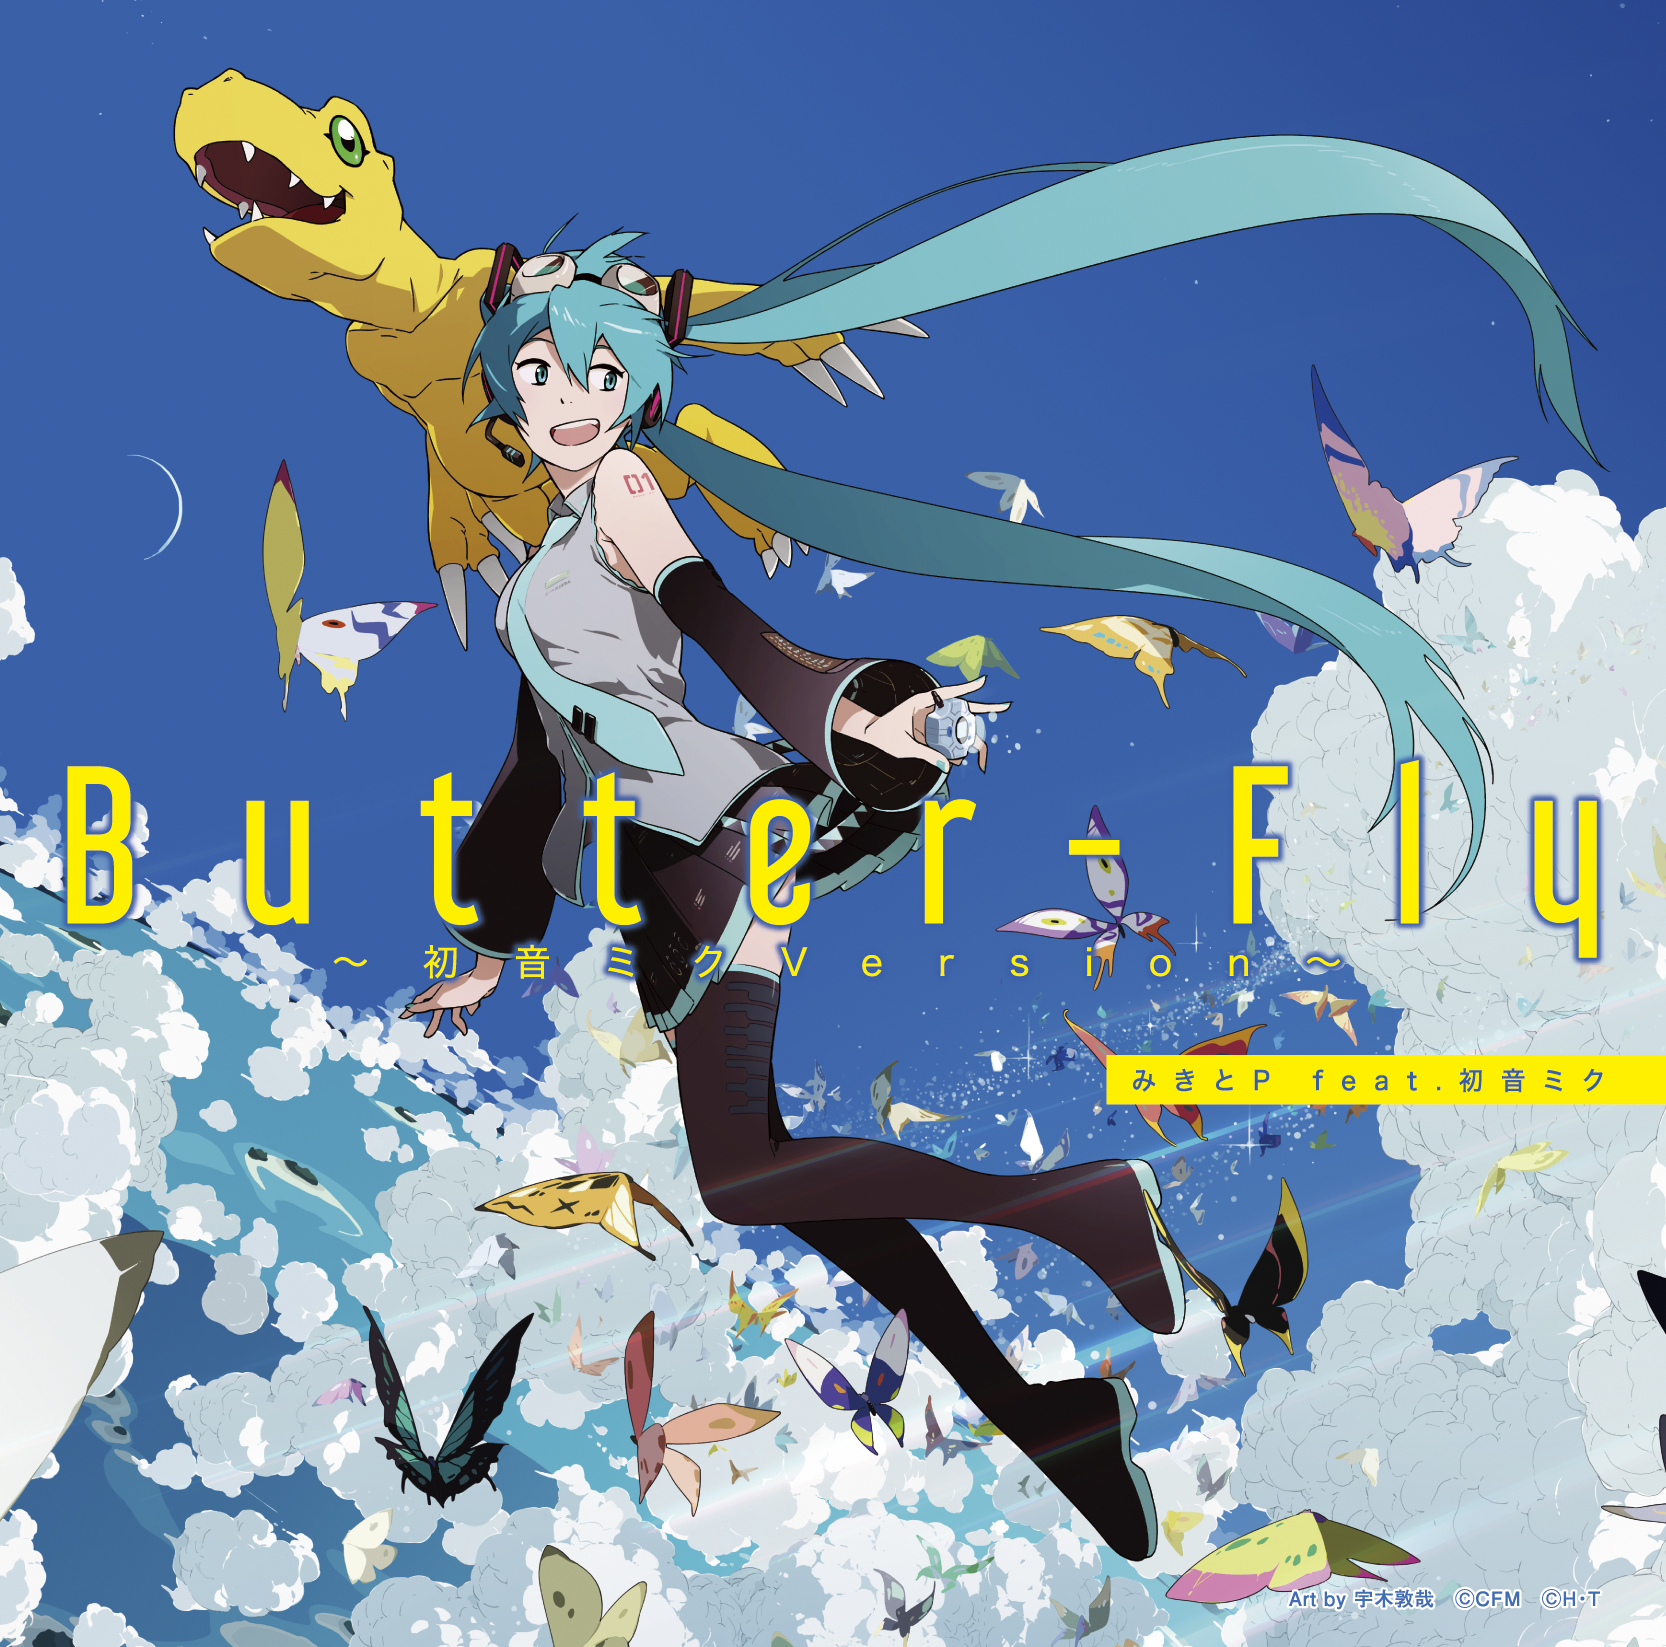 Butter-Fly~初音ミクVersion~/みきとP feat.初音ミク